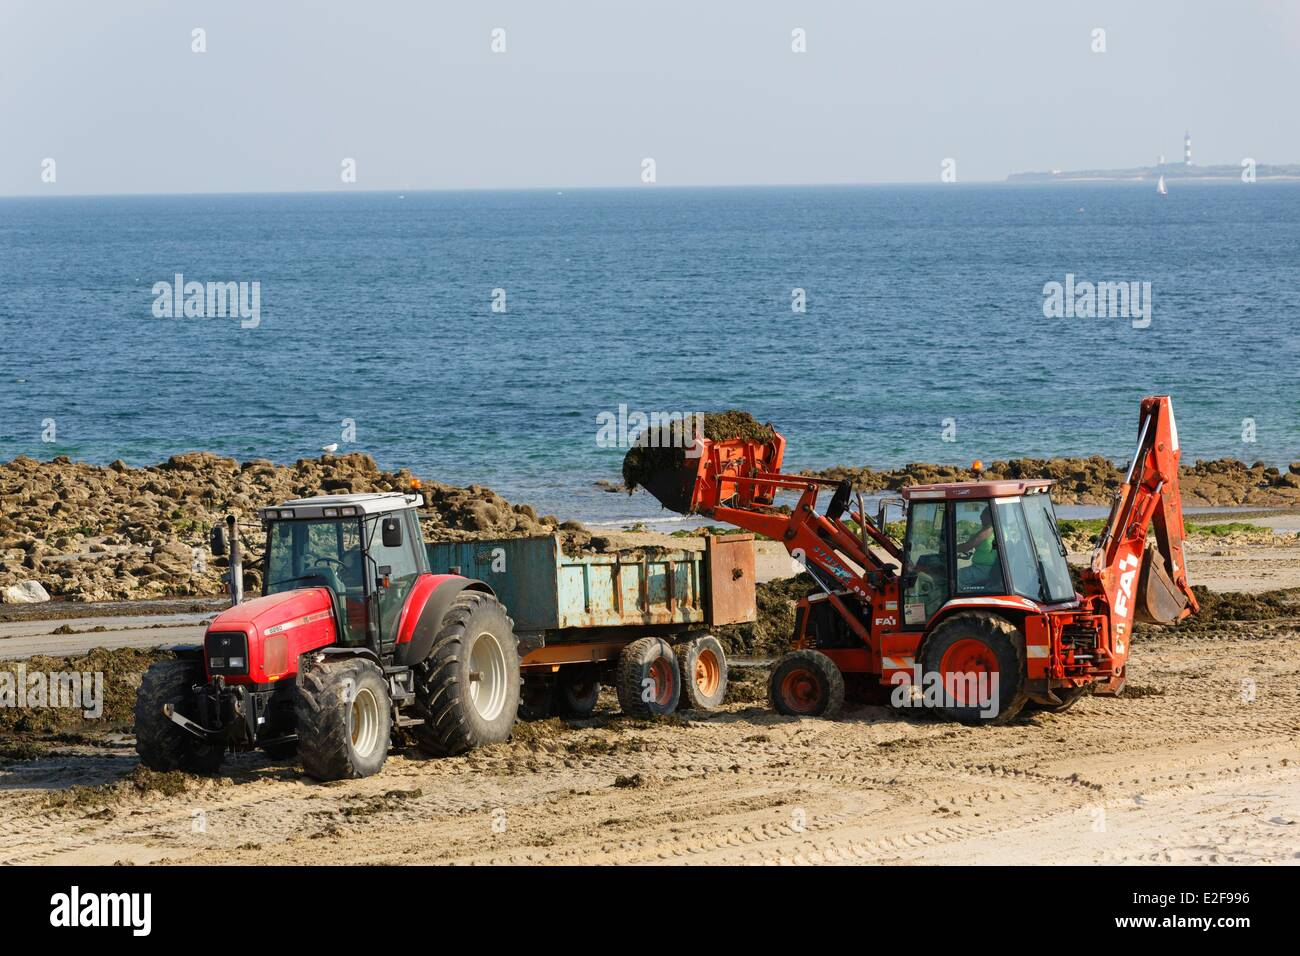 France, Charente Maritime, disposal site algae on the beaches - Stock Image